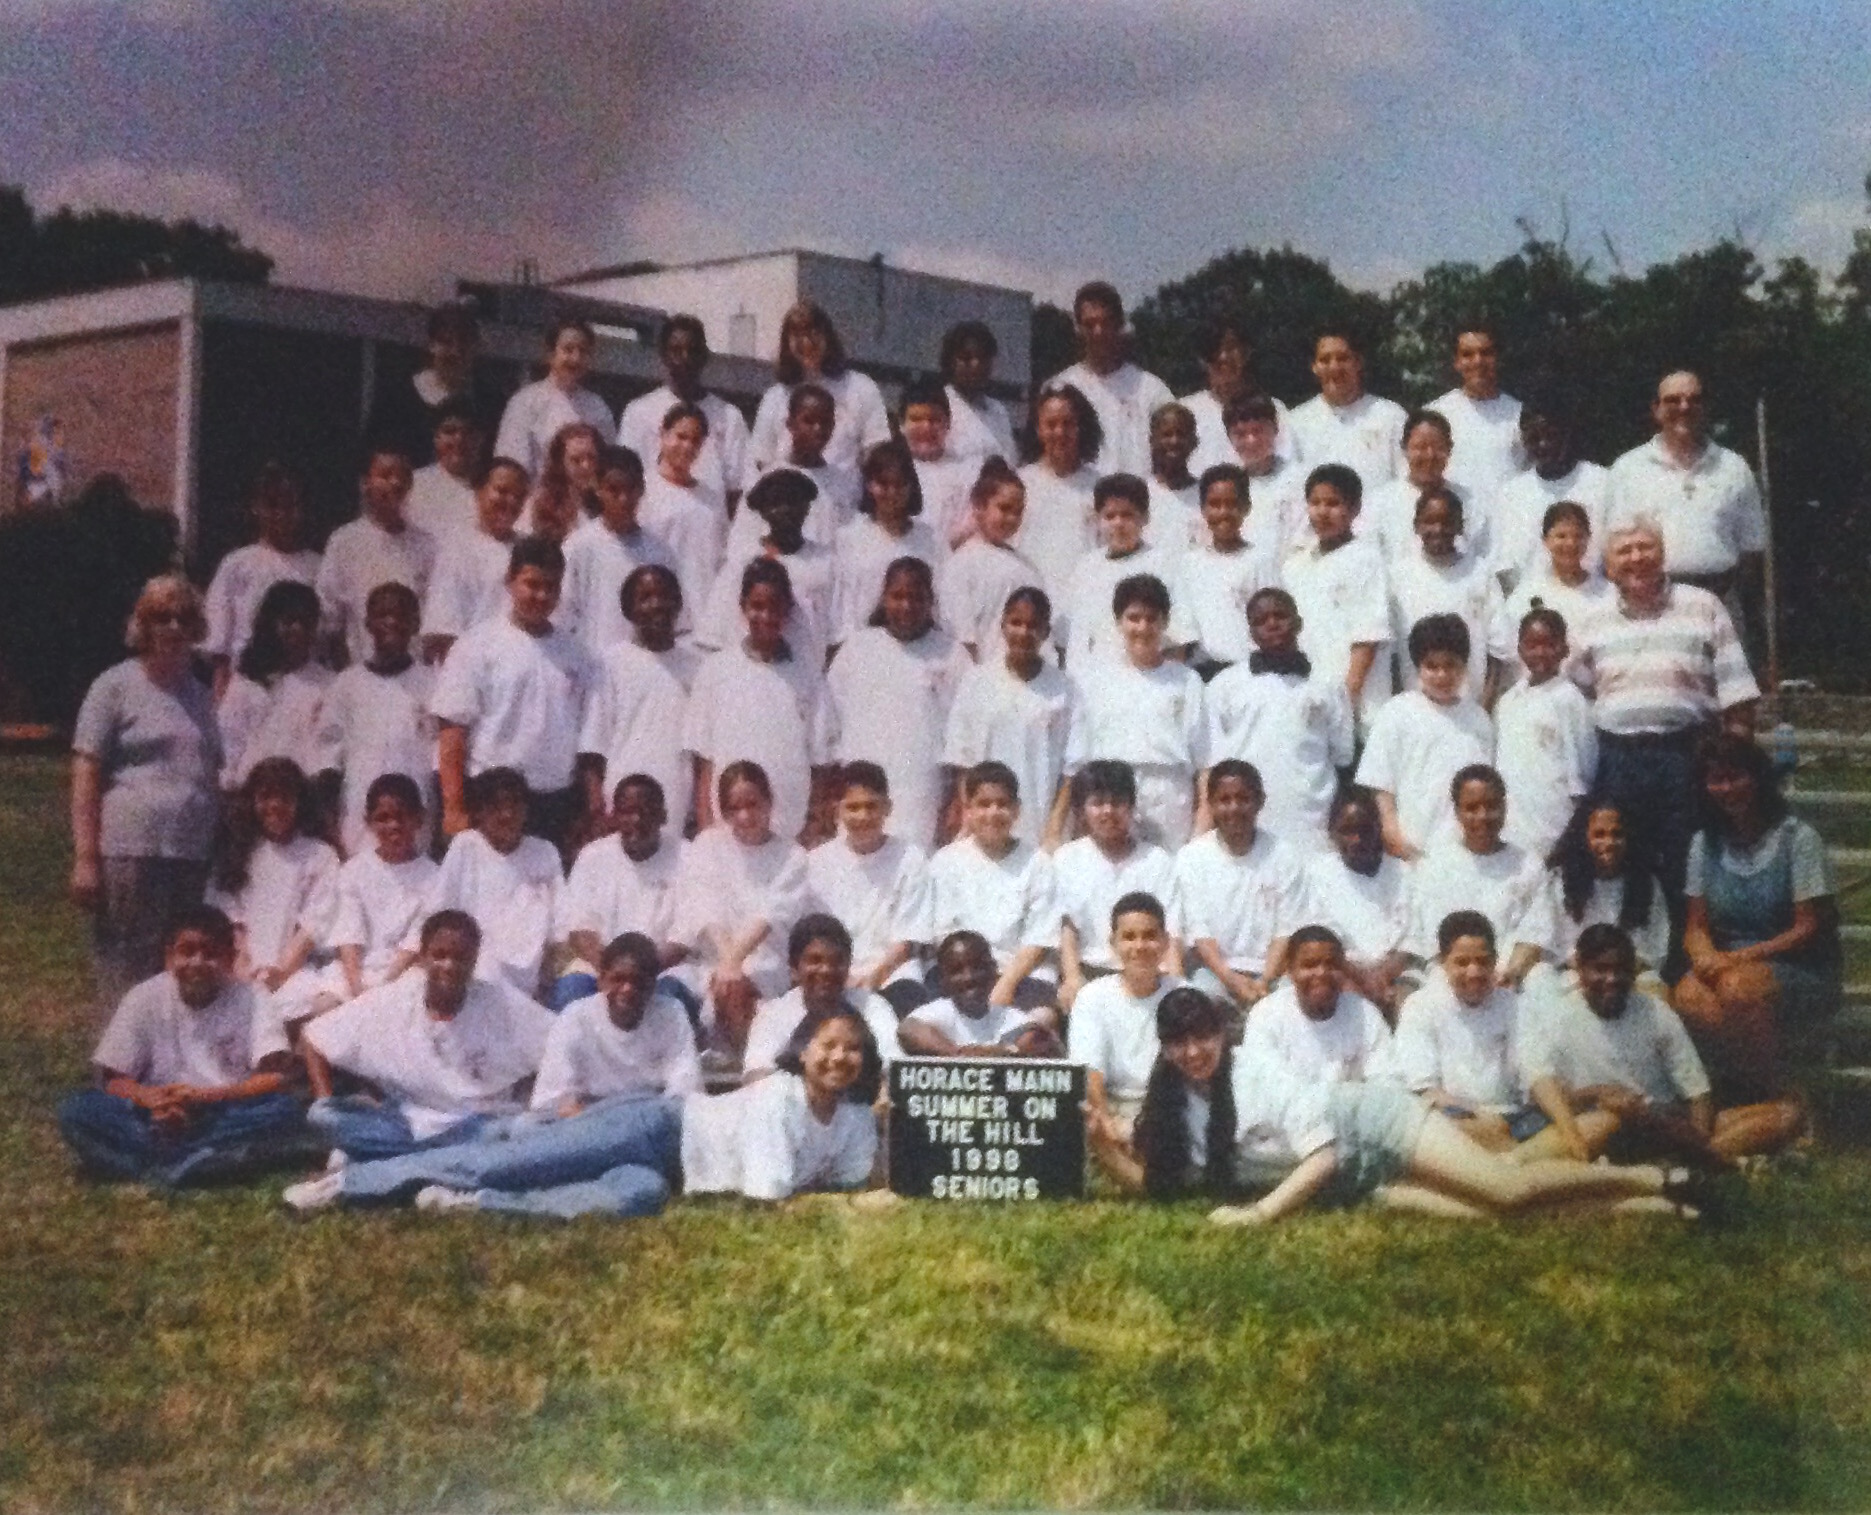 Summer on the Hill 1998